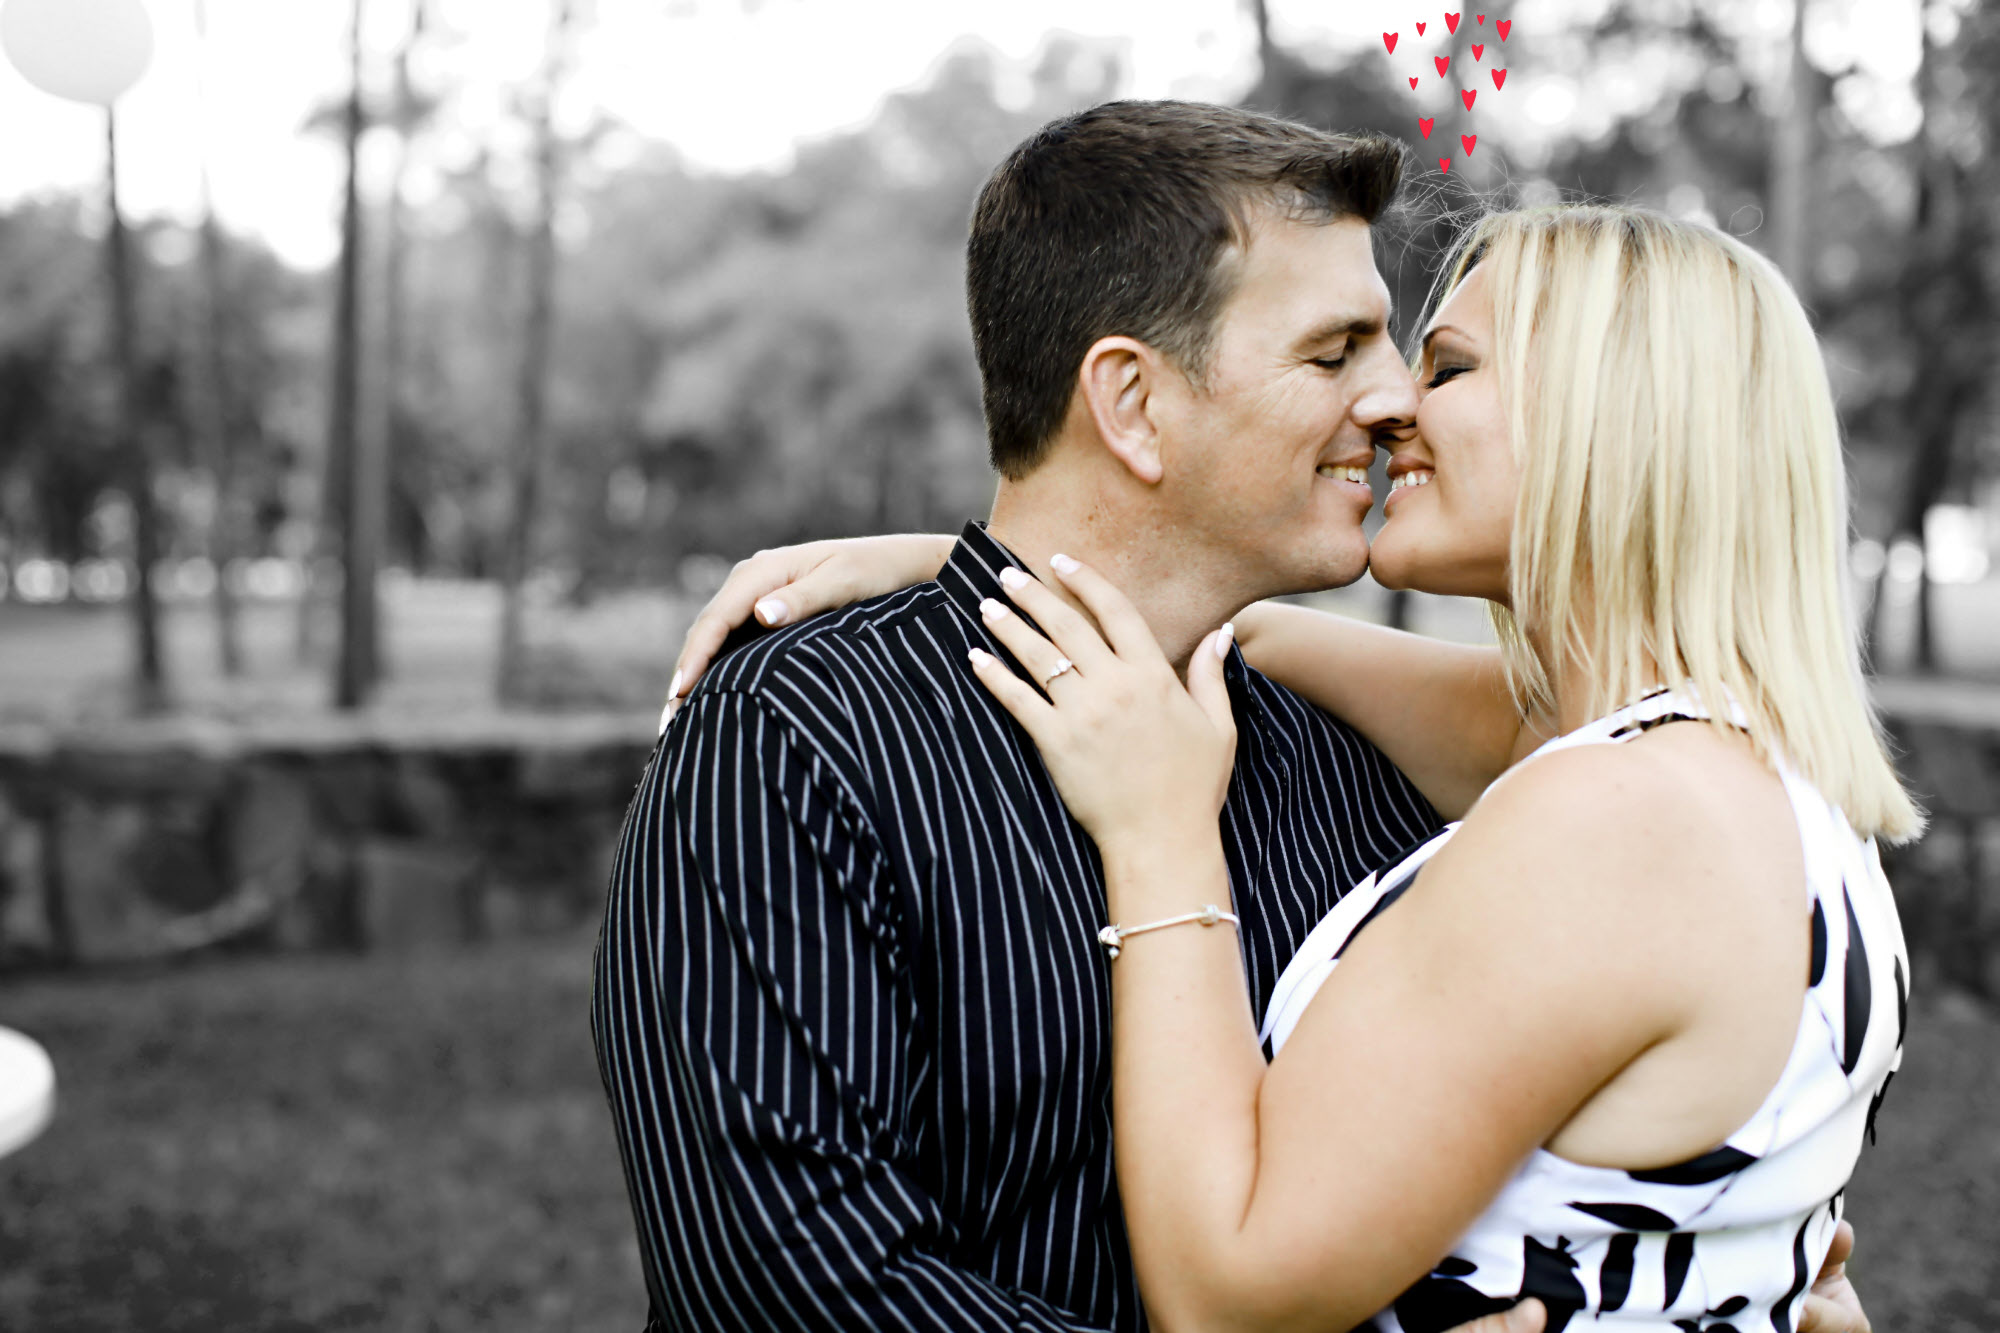 Loving Couple Share A Kiss - Free Stock Images-5862